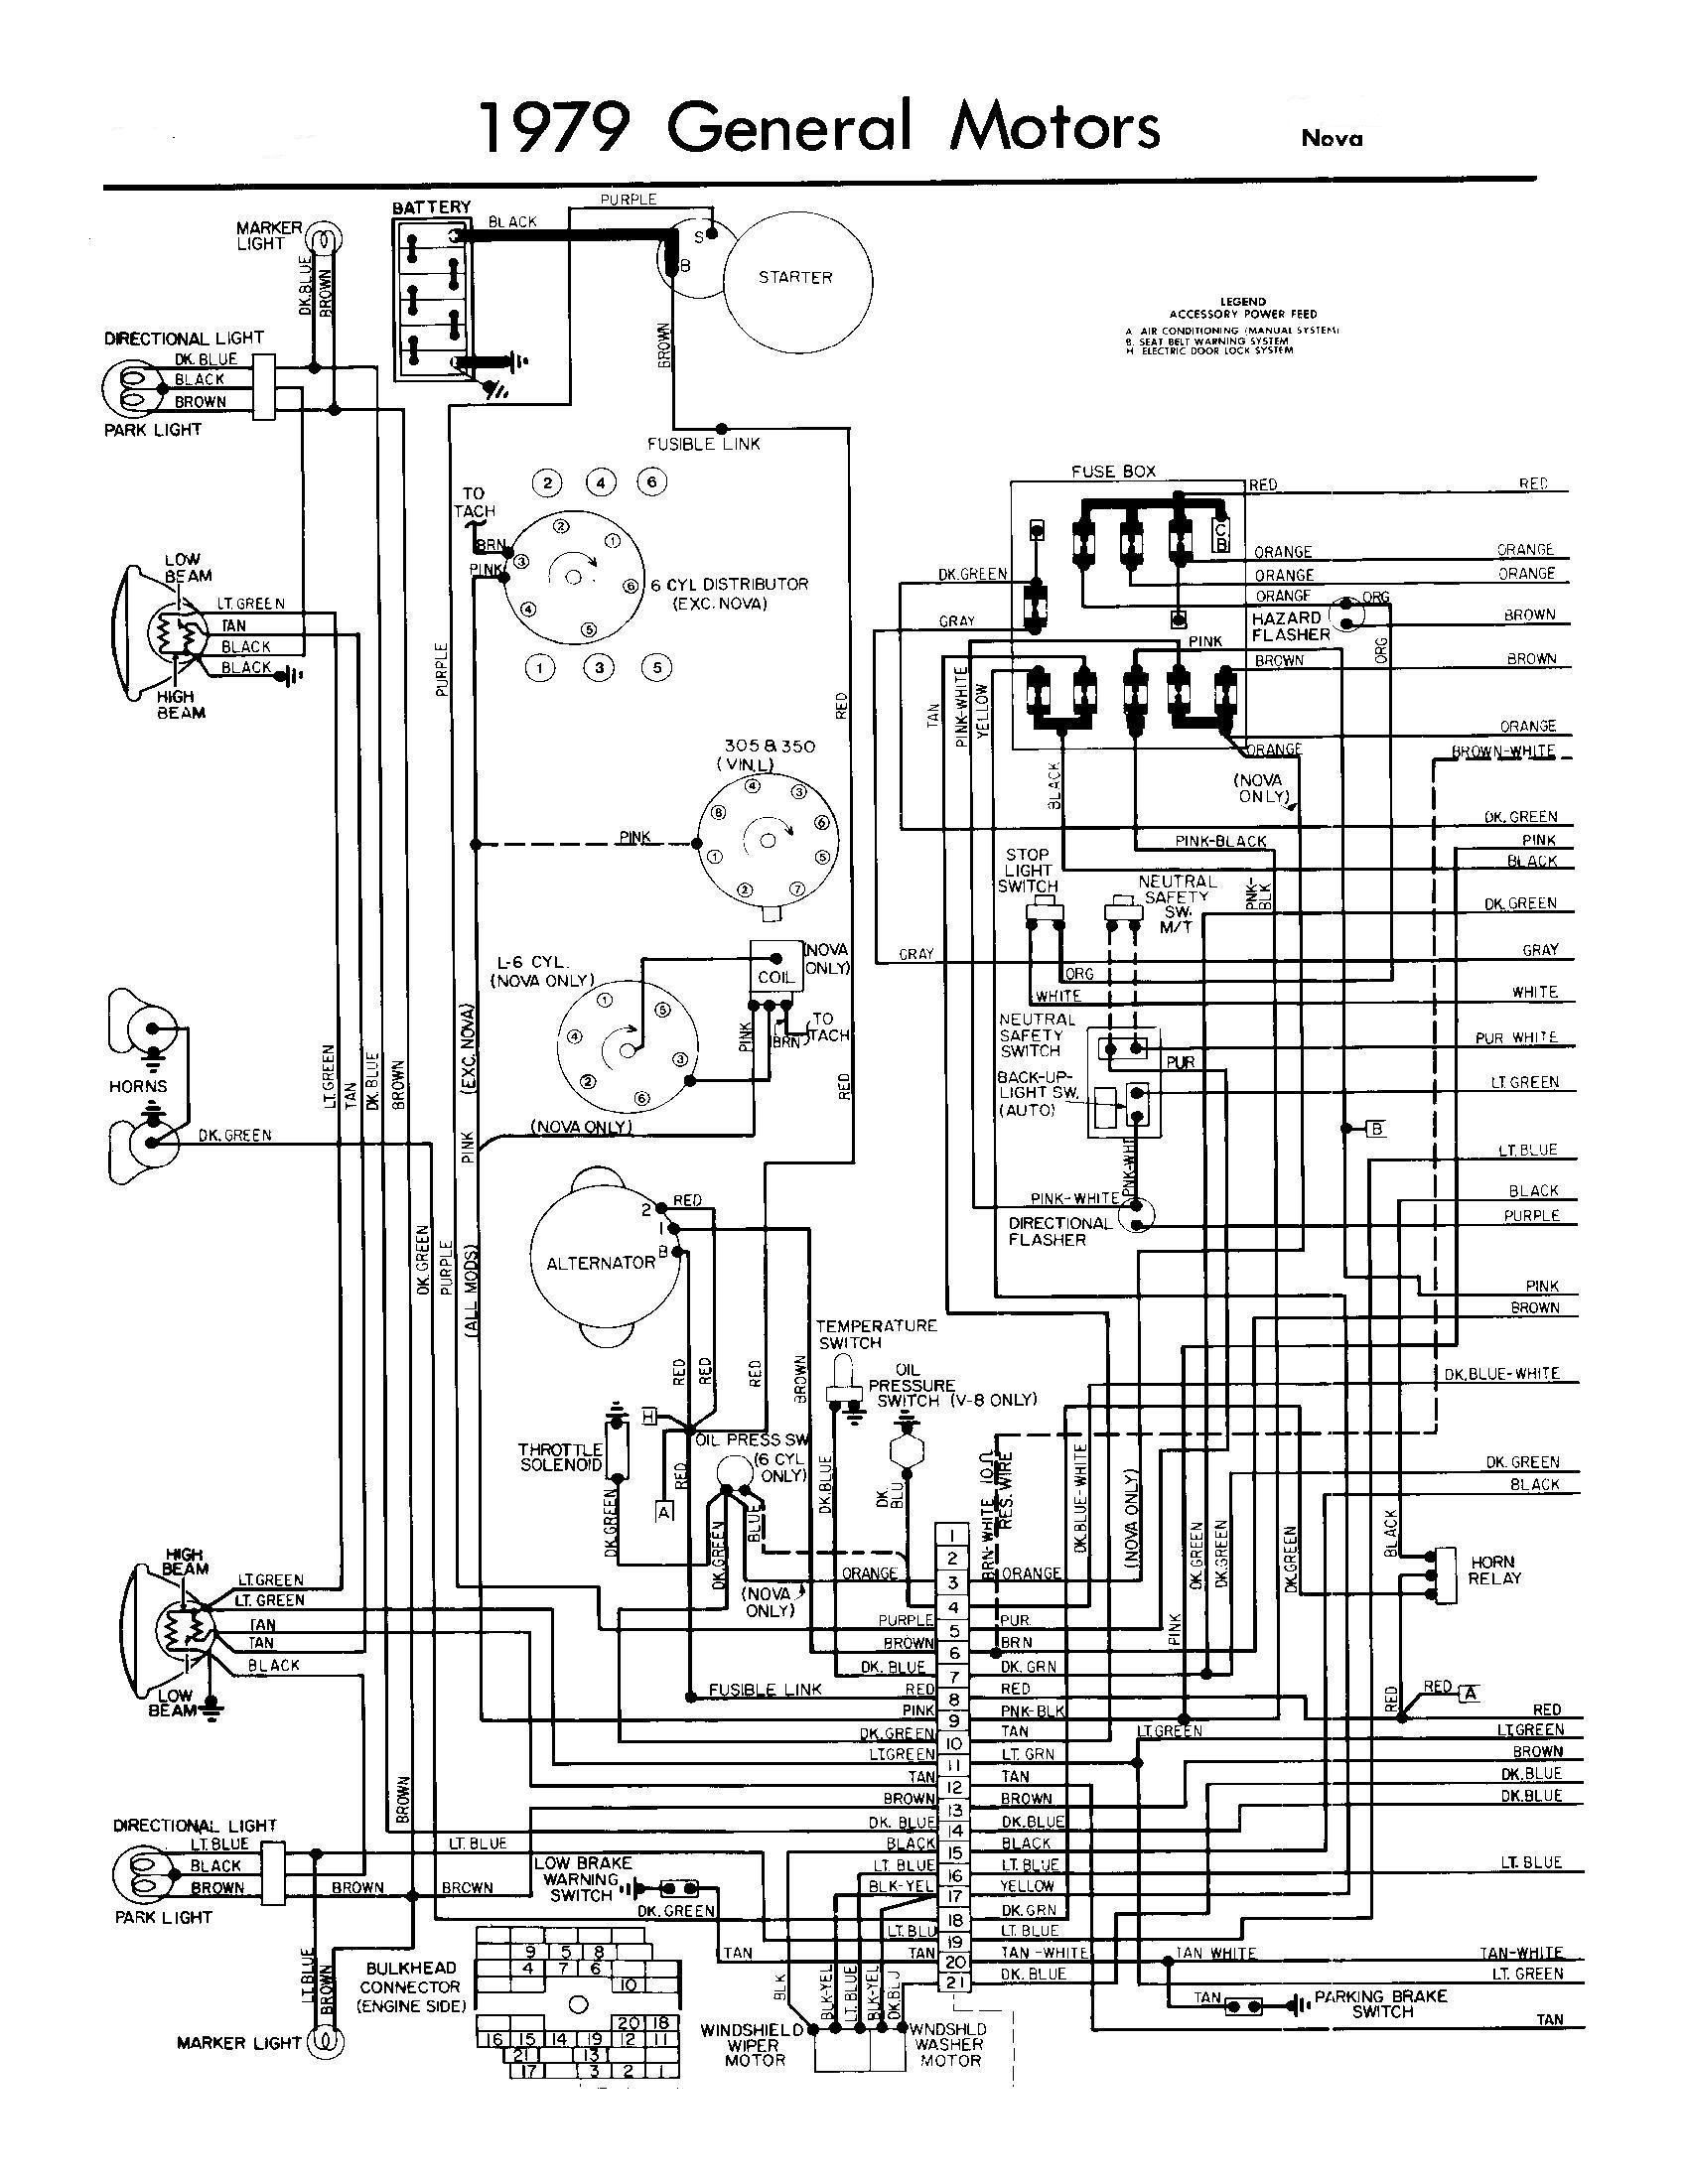 all generation wiring schematics chevy nova forum custom 79' gmc